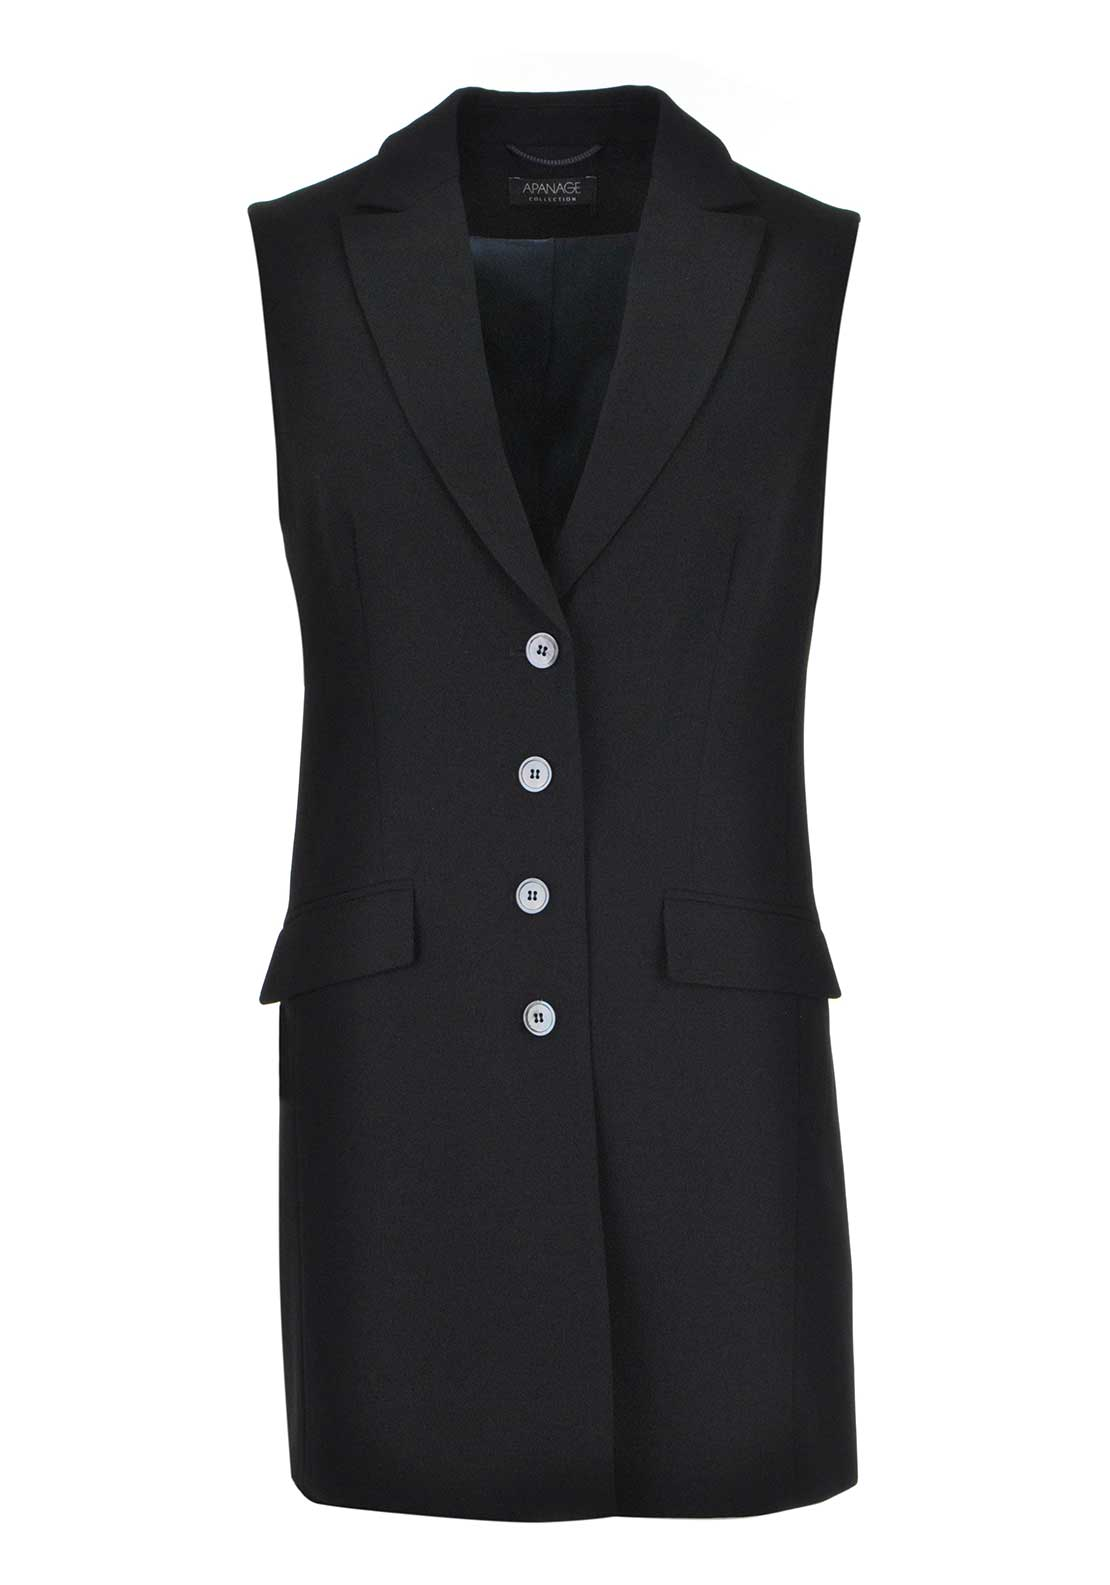 Apanage Long Length Waistcoat, Black